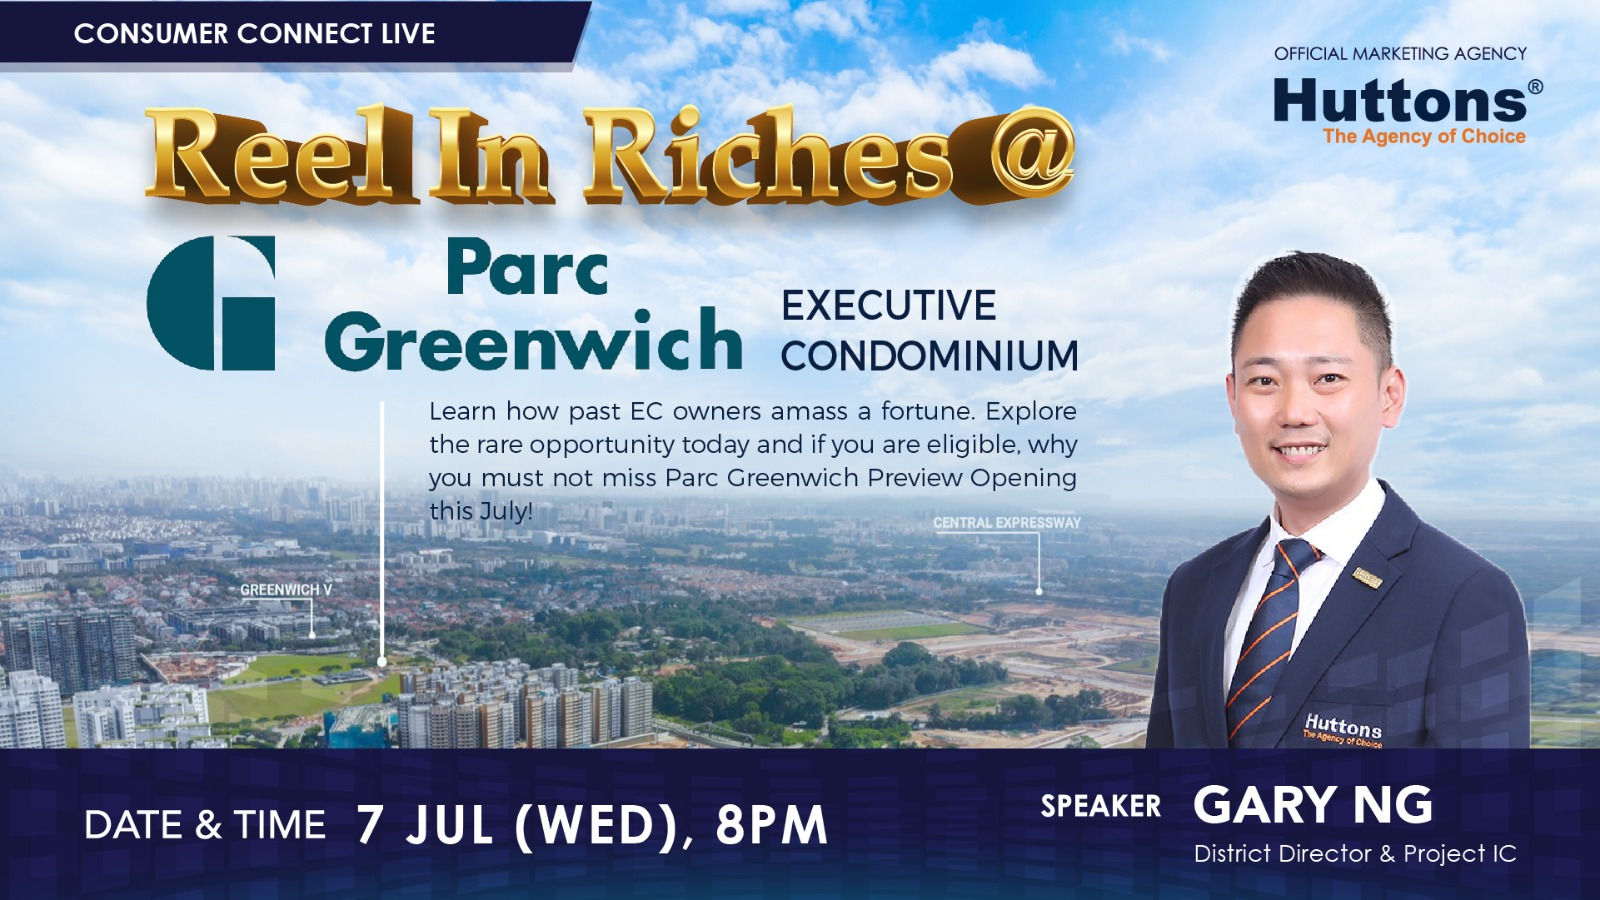 Huttons Consumer Connect - Reel in Riches @ Parc Greenwich (Executive Condominium)